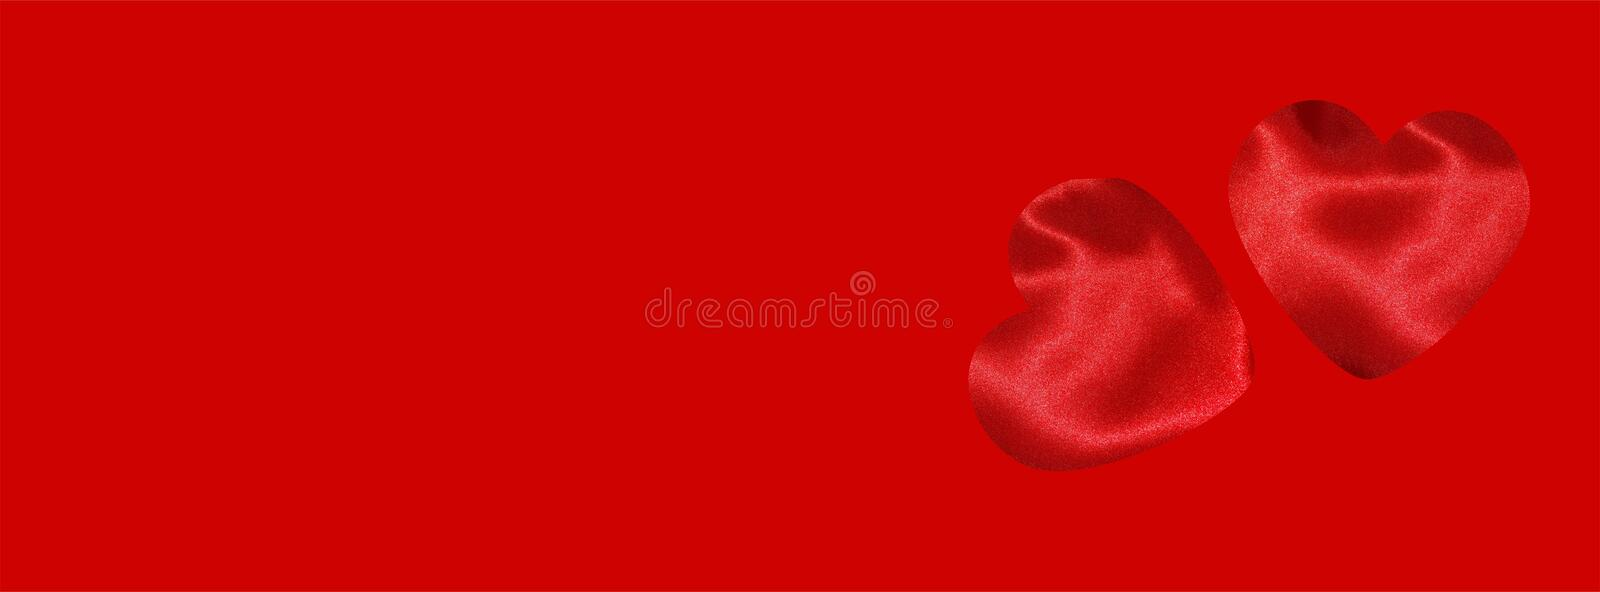 Valentine banner for Facebook cover with hearts on deep red background stock photography